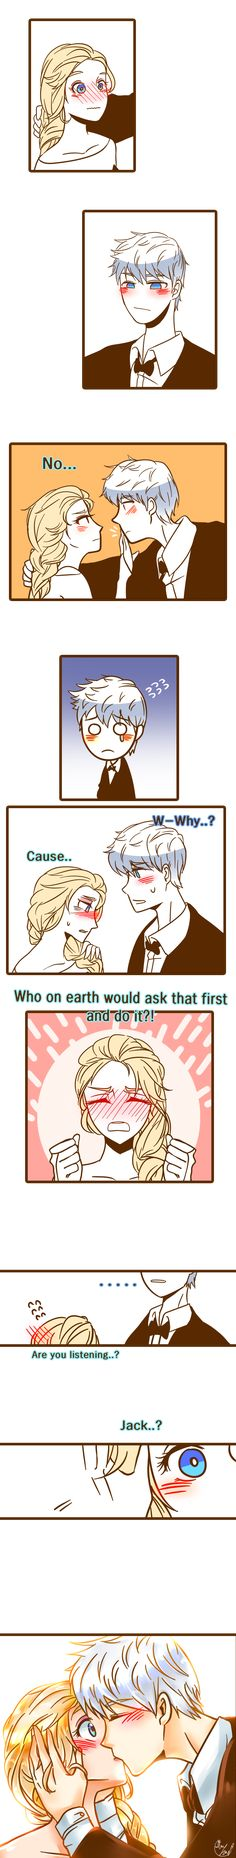 Rise of the Guardians' Jack Frost and Frozen's Elsa | J.K. Rowling's Harry Potter / [Triwizard] Ball-Jelsa (3) by Lime-Hael on DeviantArt